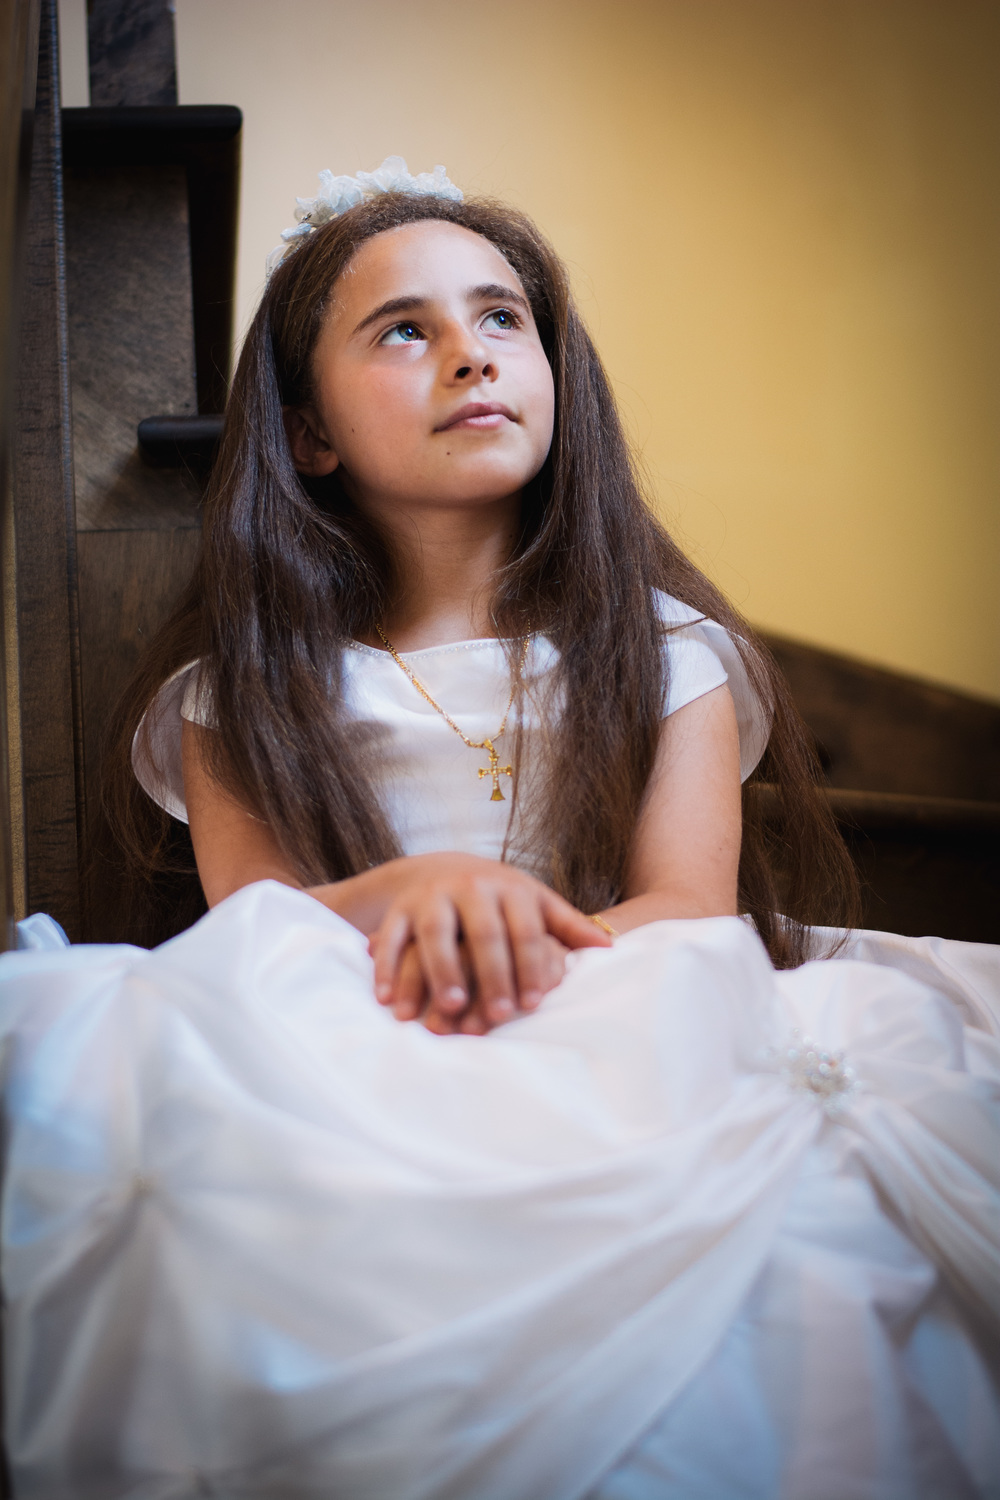 Elyana_First_Communion-10.jpg